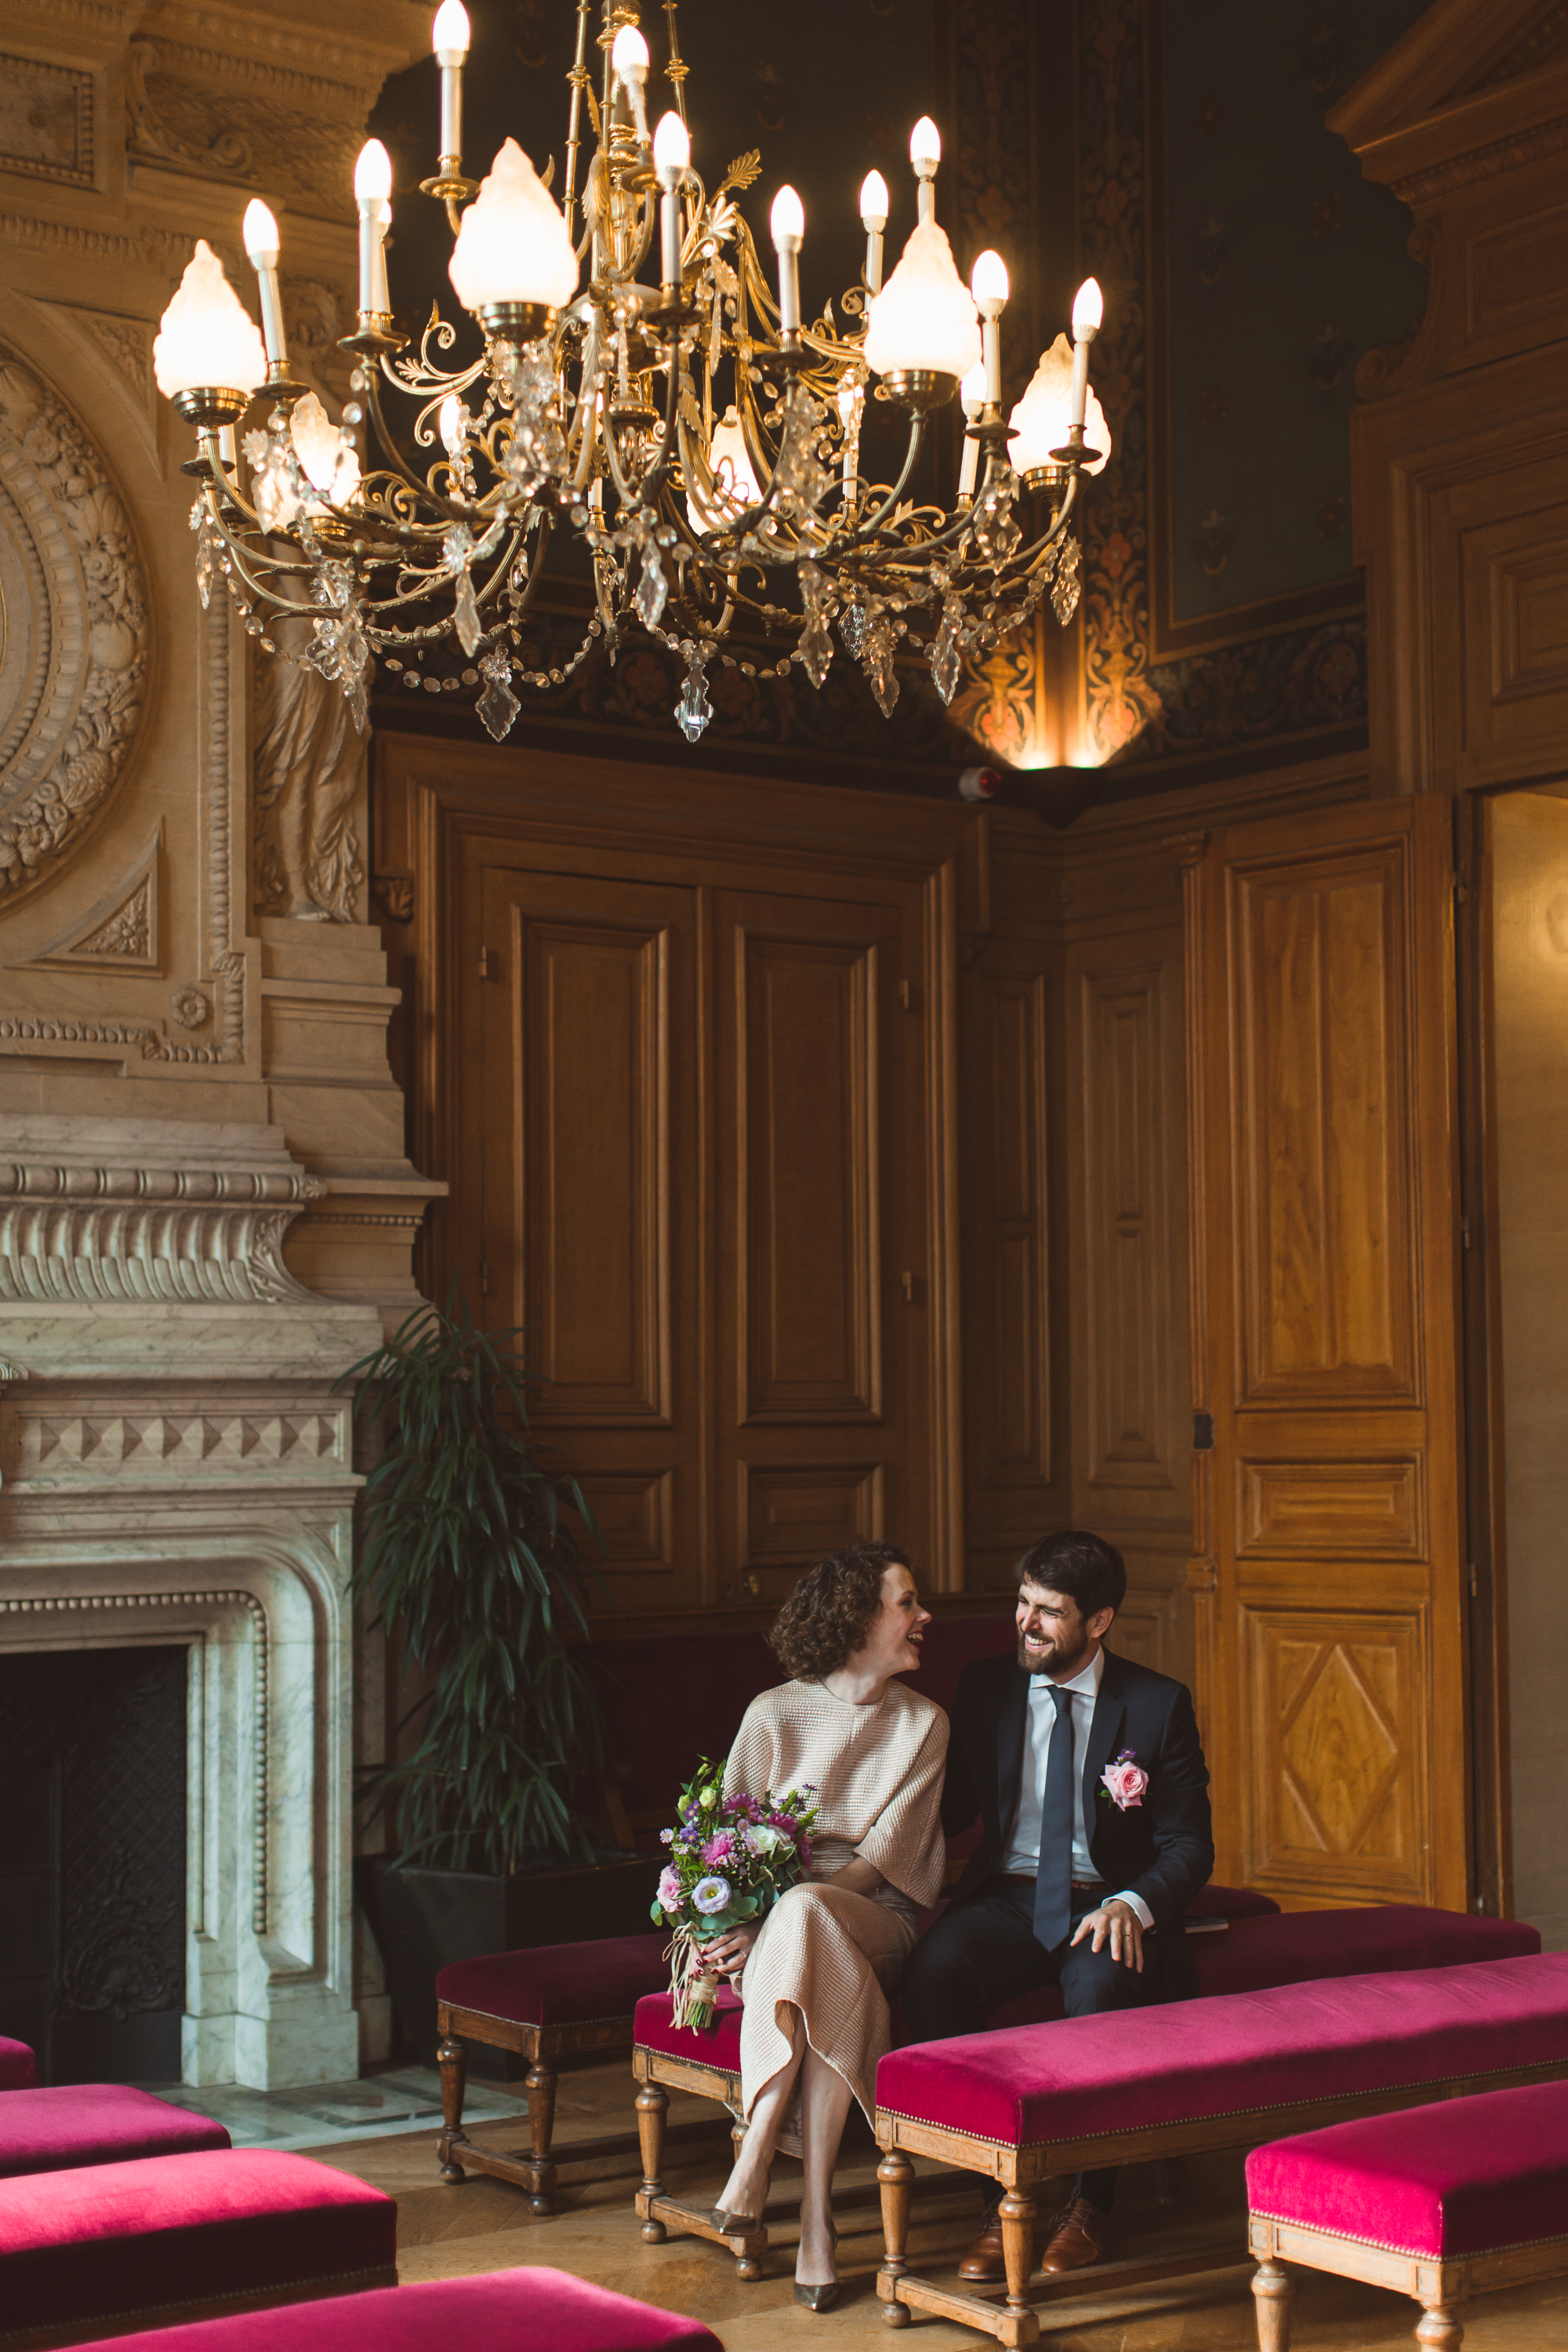 Emma&Nico_WeddingParis_by_UlaBlocksage-89.jpg